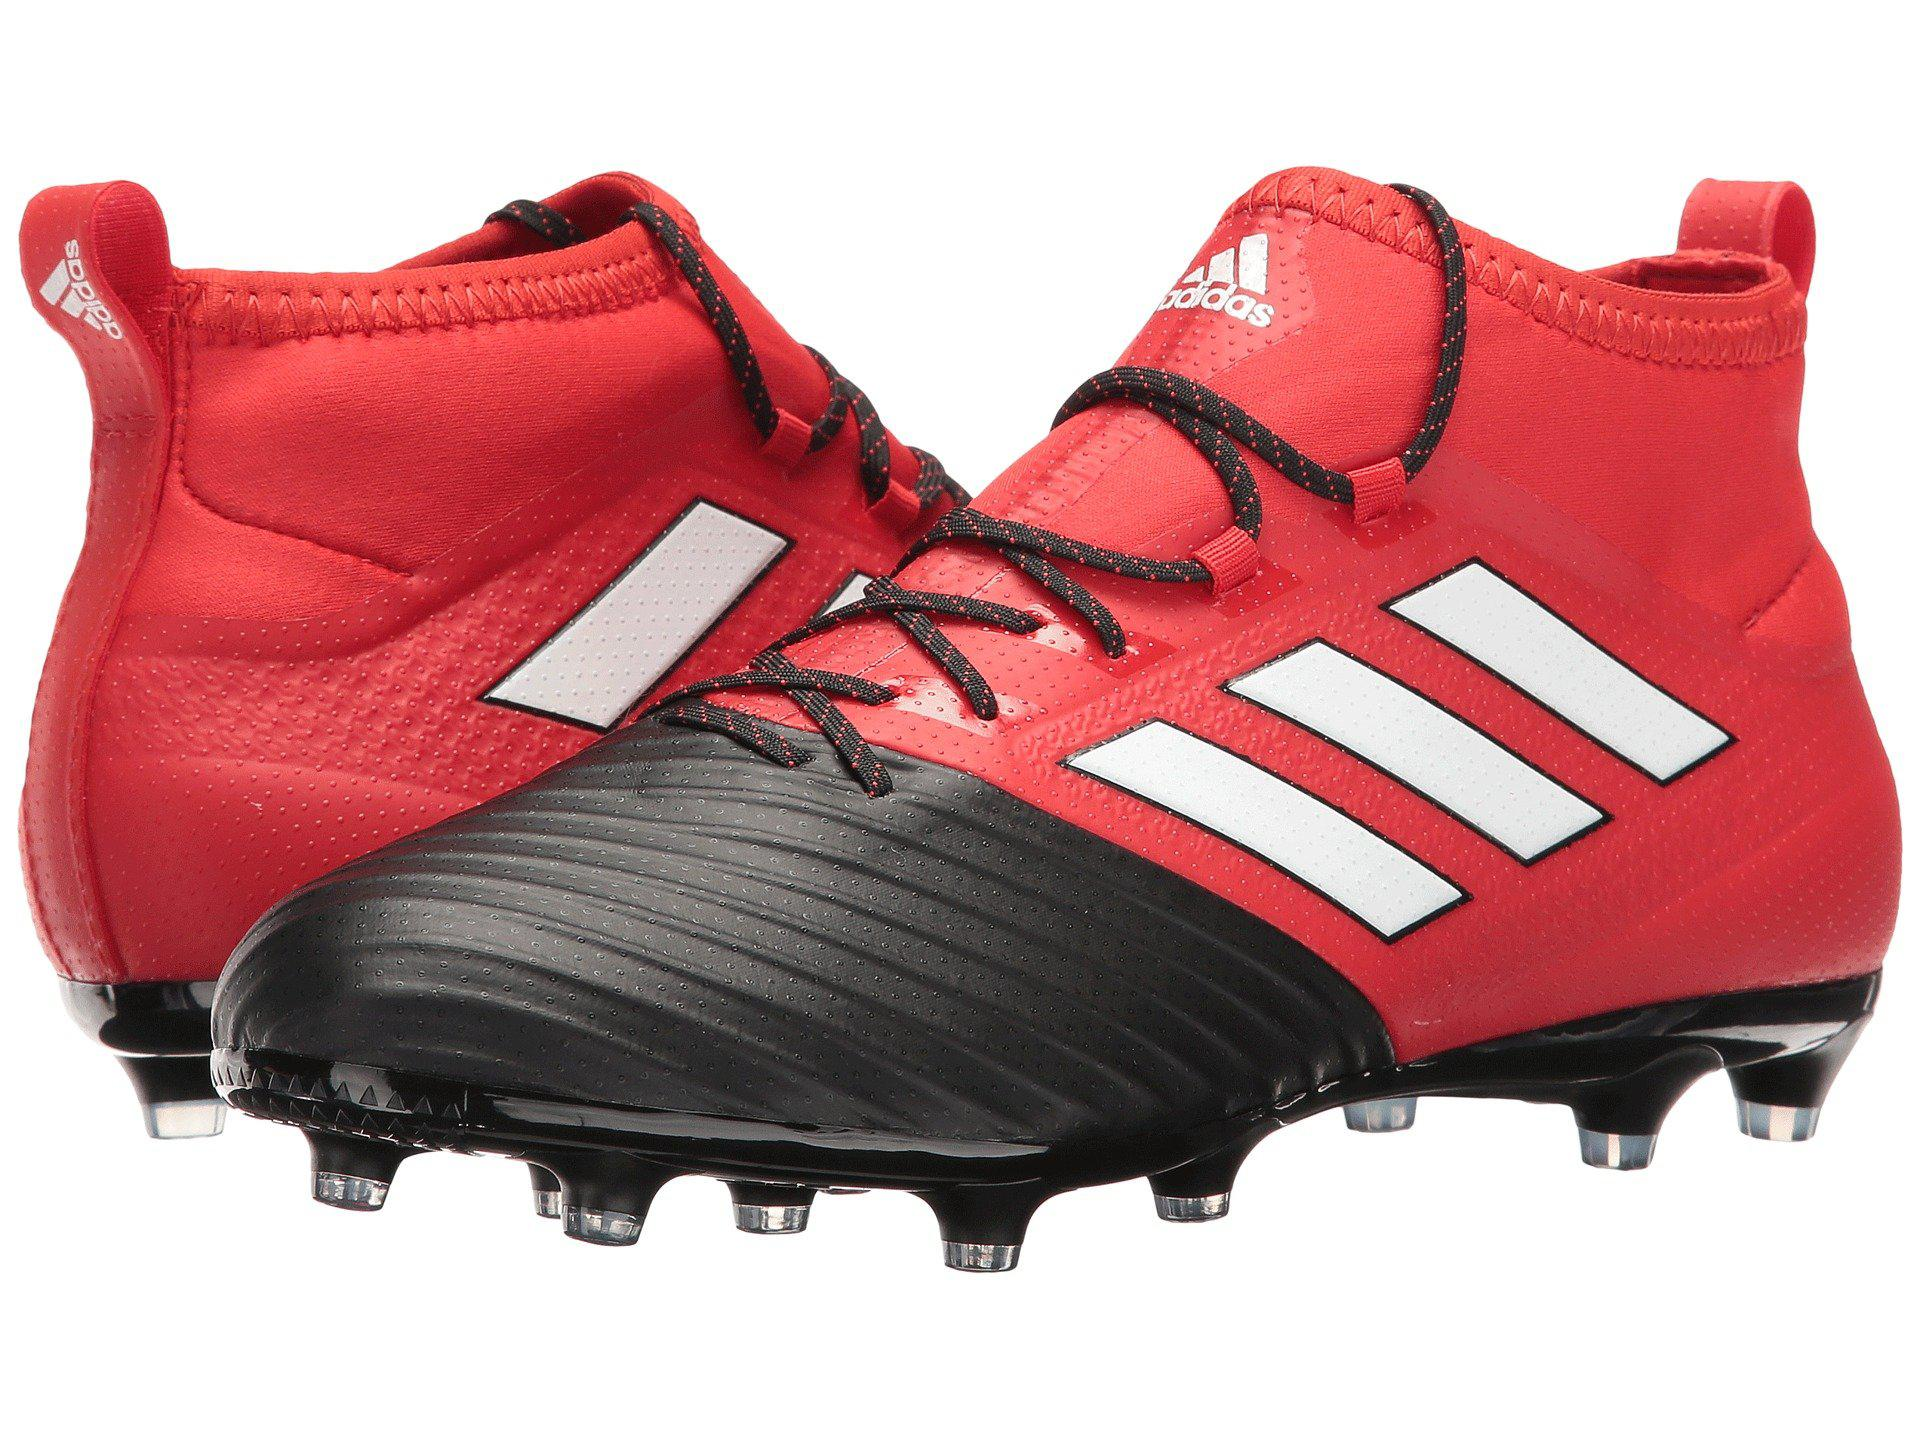 ad7e9105d9e0 Lyst - adidas Ace 17.2 Primemesh Fg in Red for Men